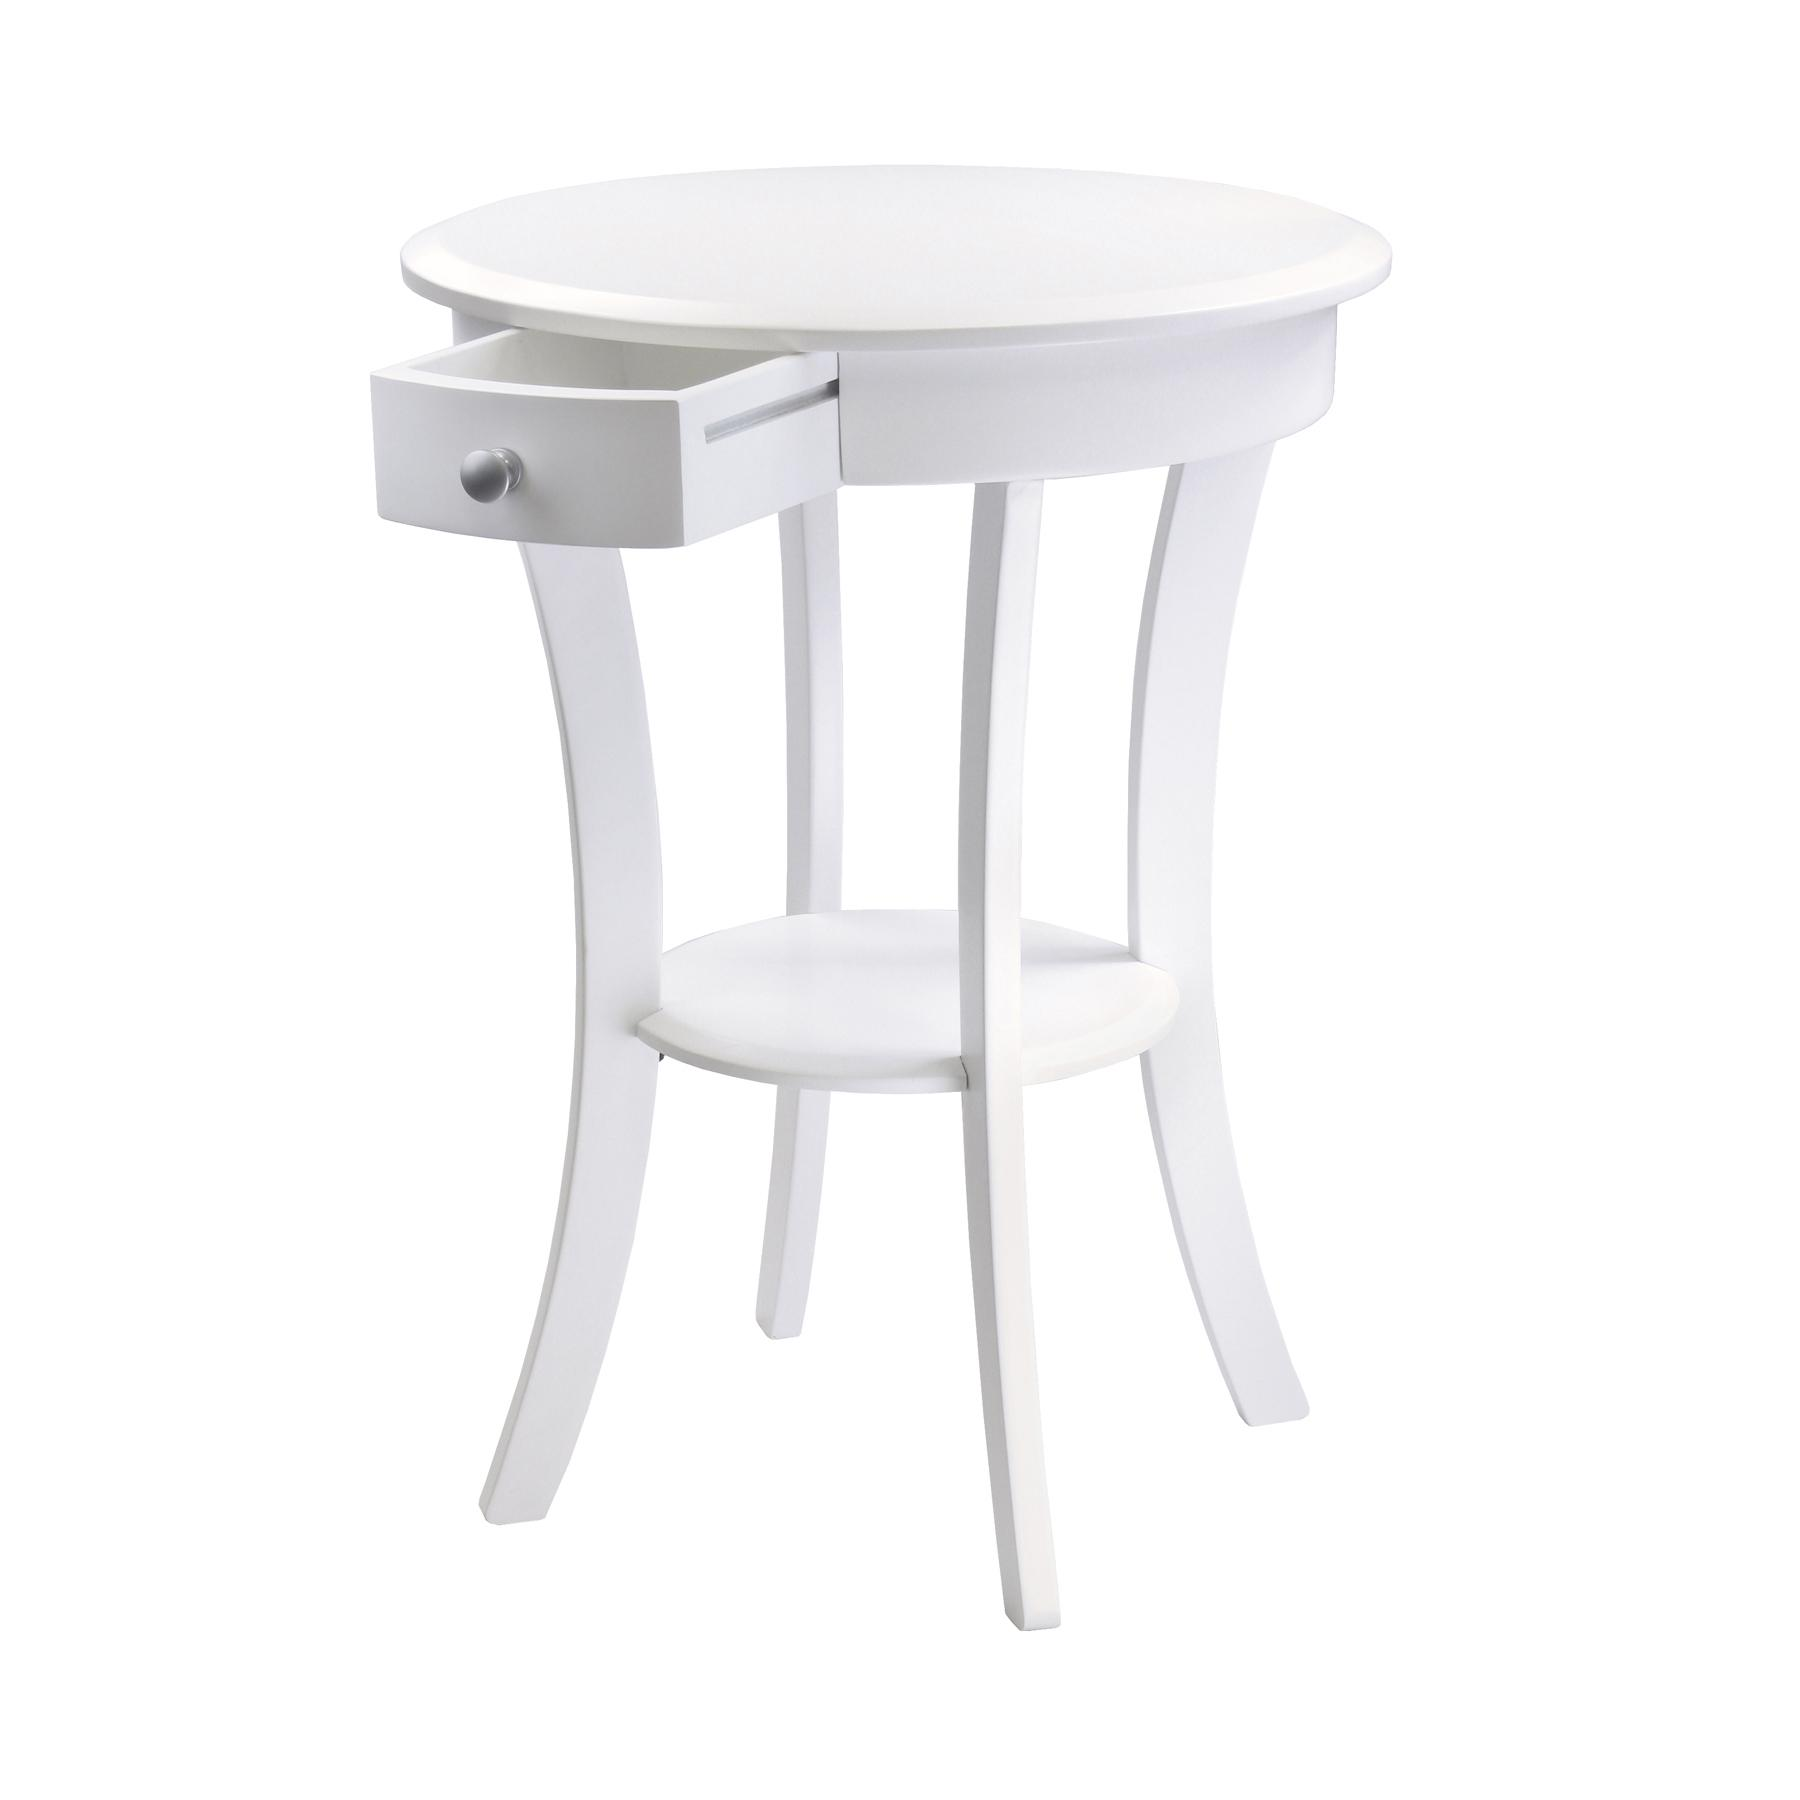 Winsome wood sasha accent table with drawer for Occasional table manufacturers